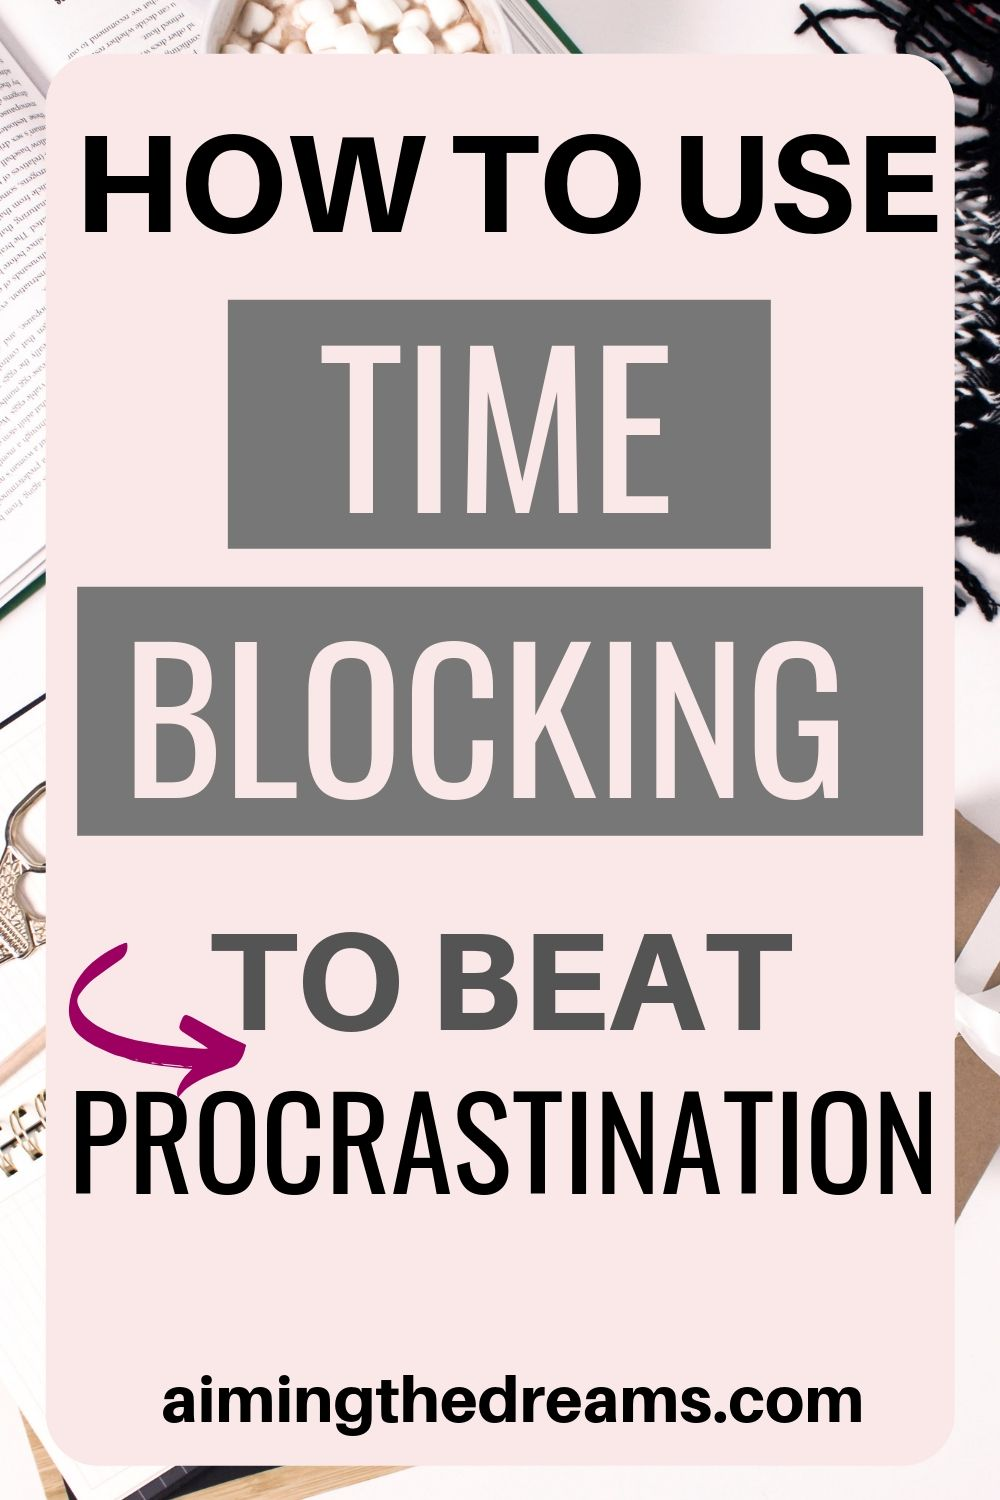 How to beat procrastination with time blocking